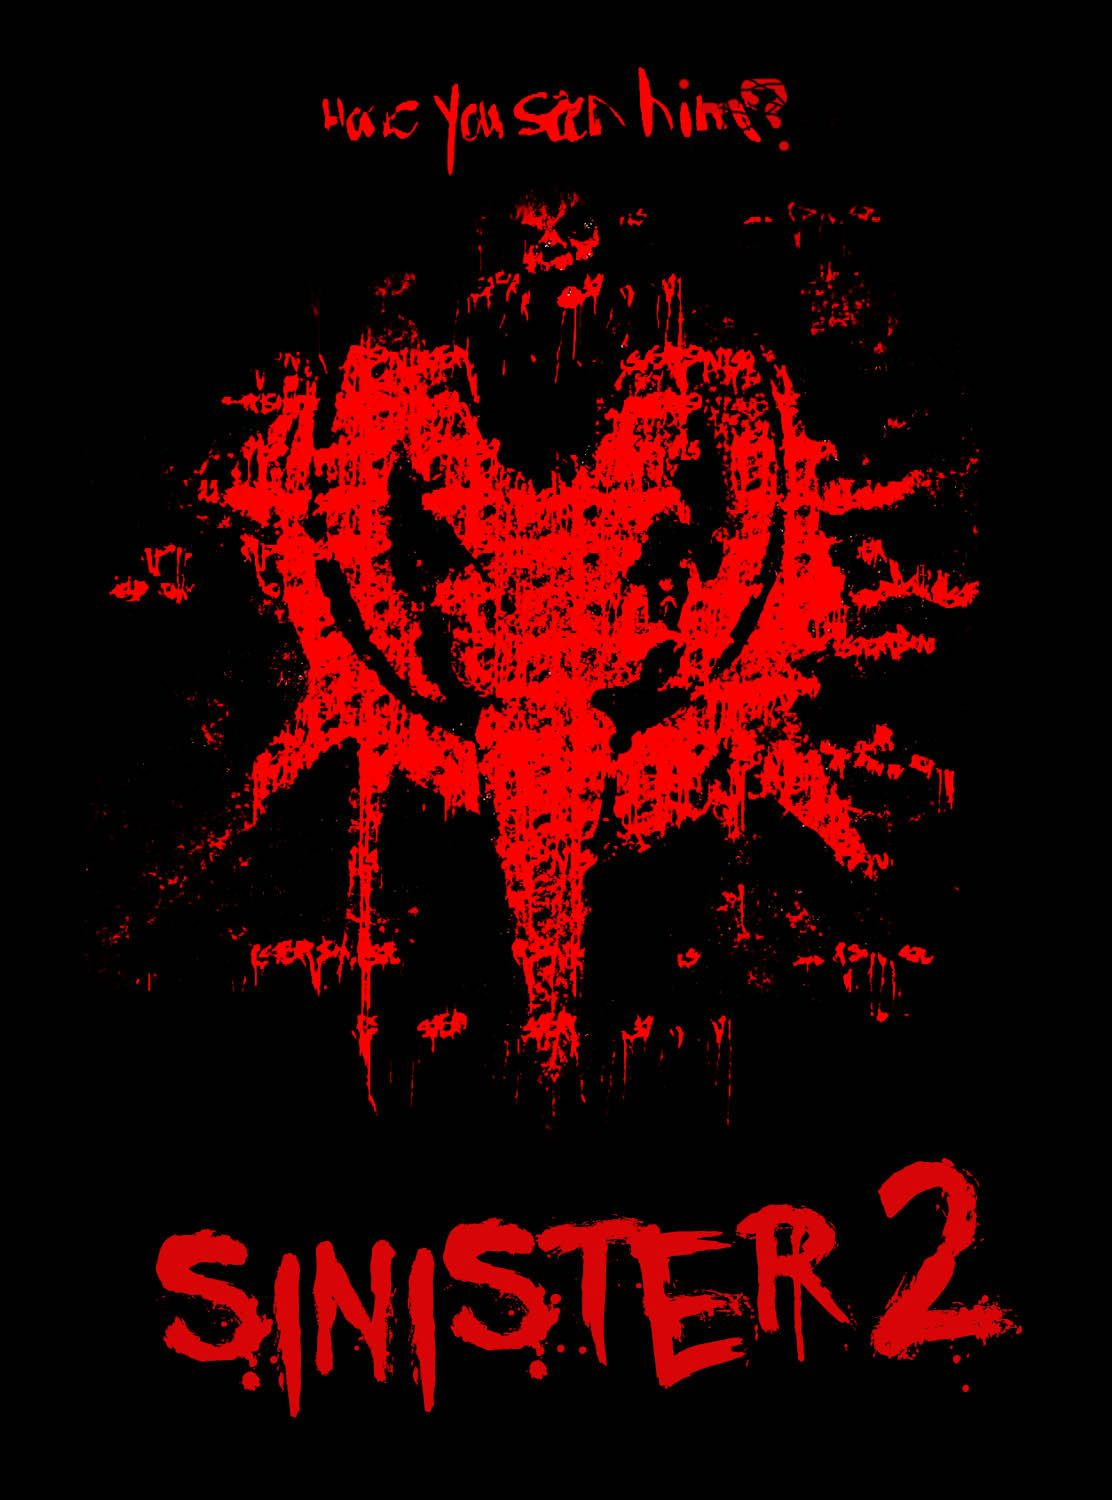 Sinister 2 Bagul Related Keywords & Suggestions - Sinister 2 Bagul ...